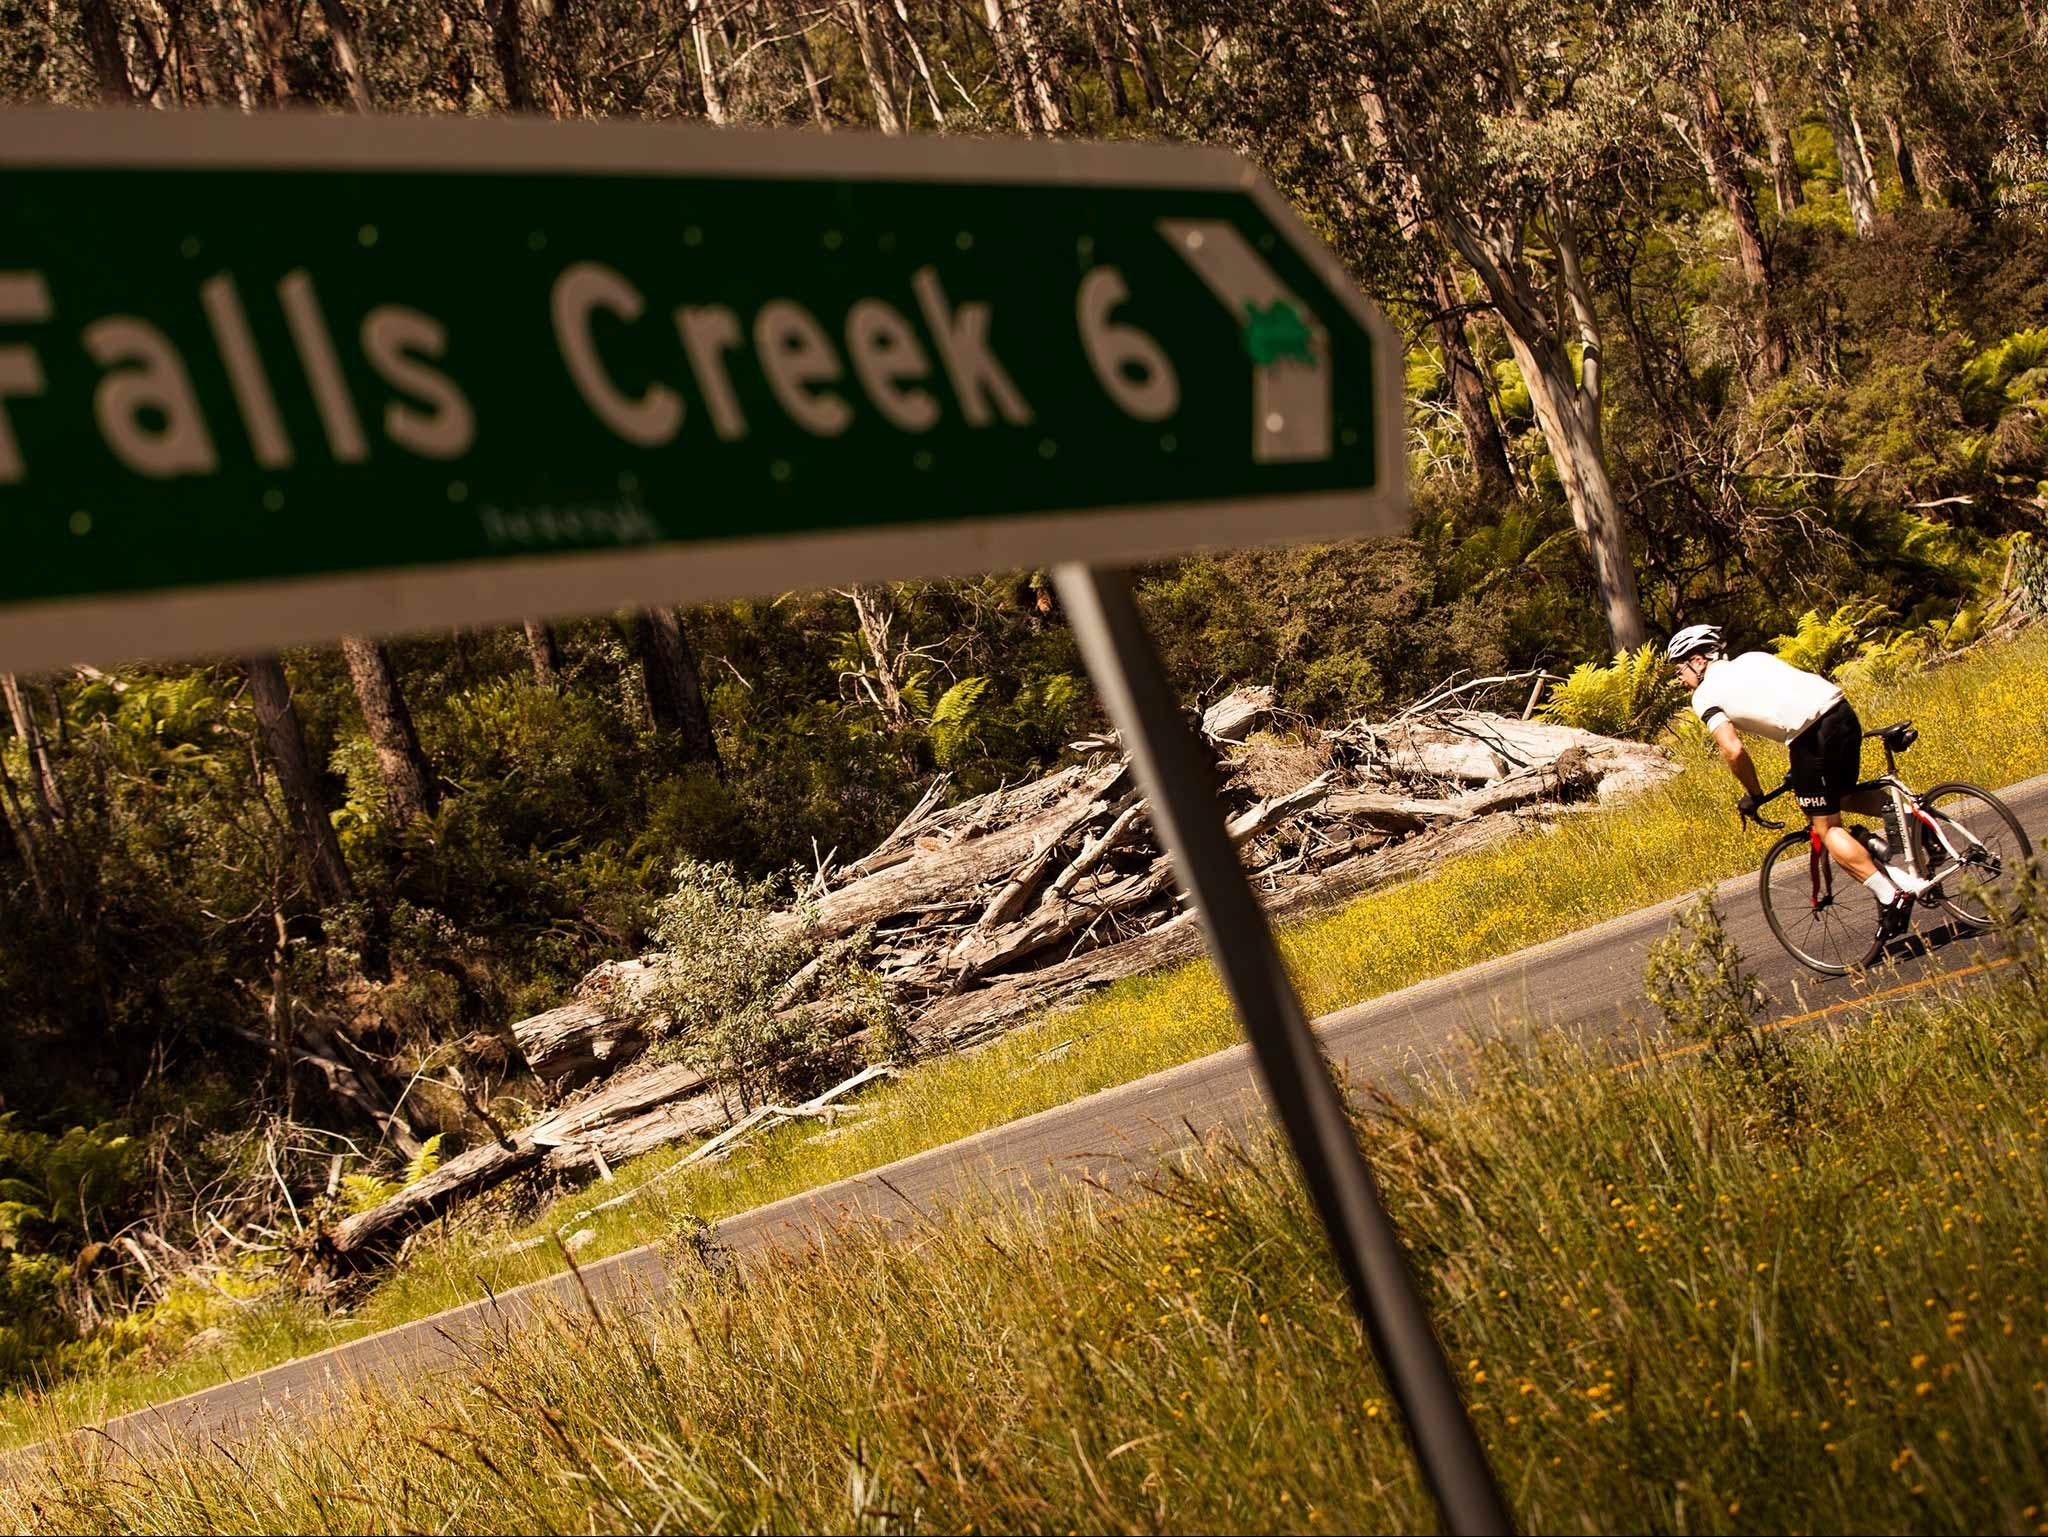 7 Peaks Ride - Falls Creek - Attractions Melbourne